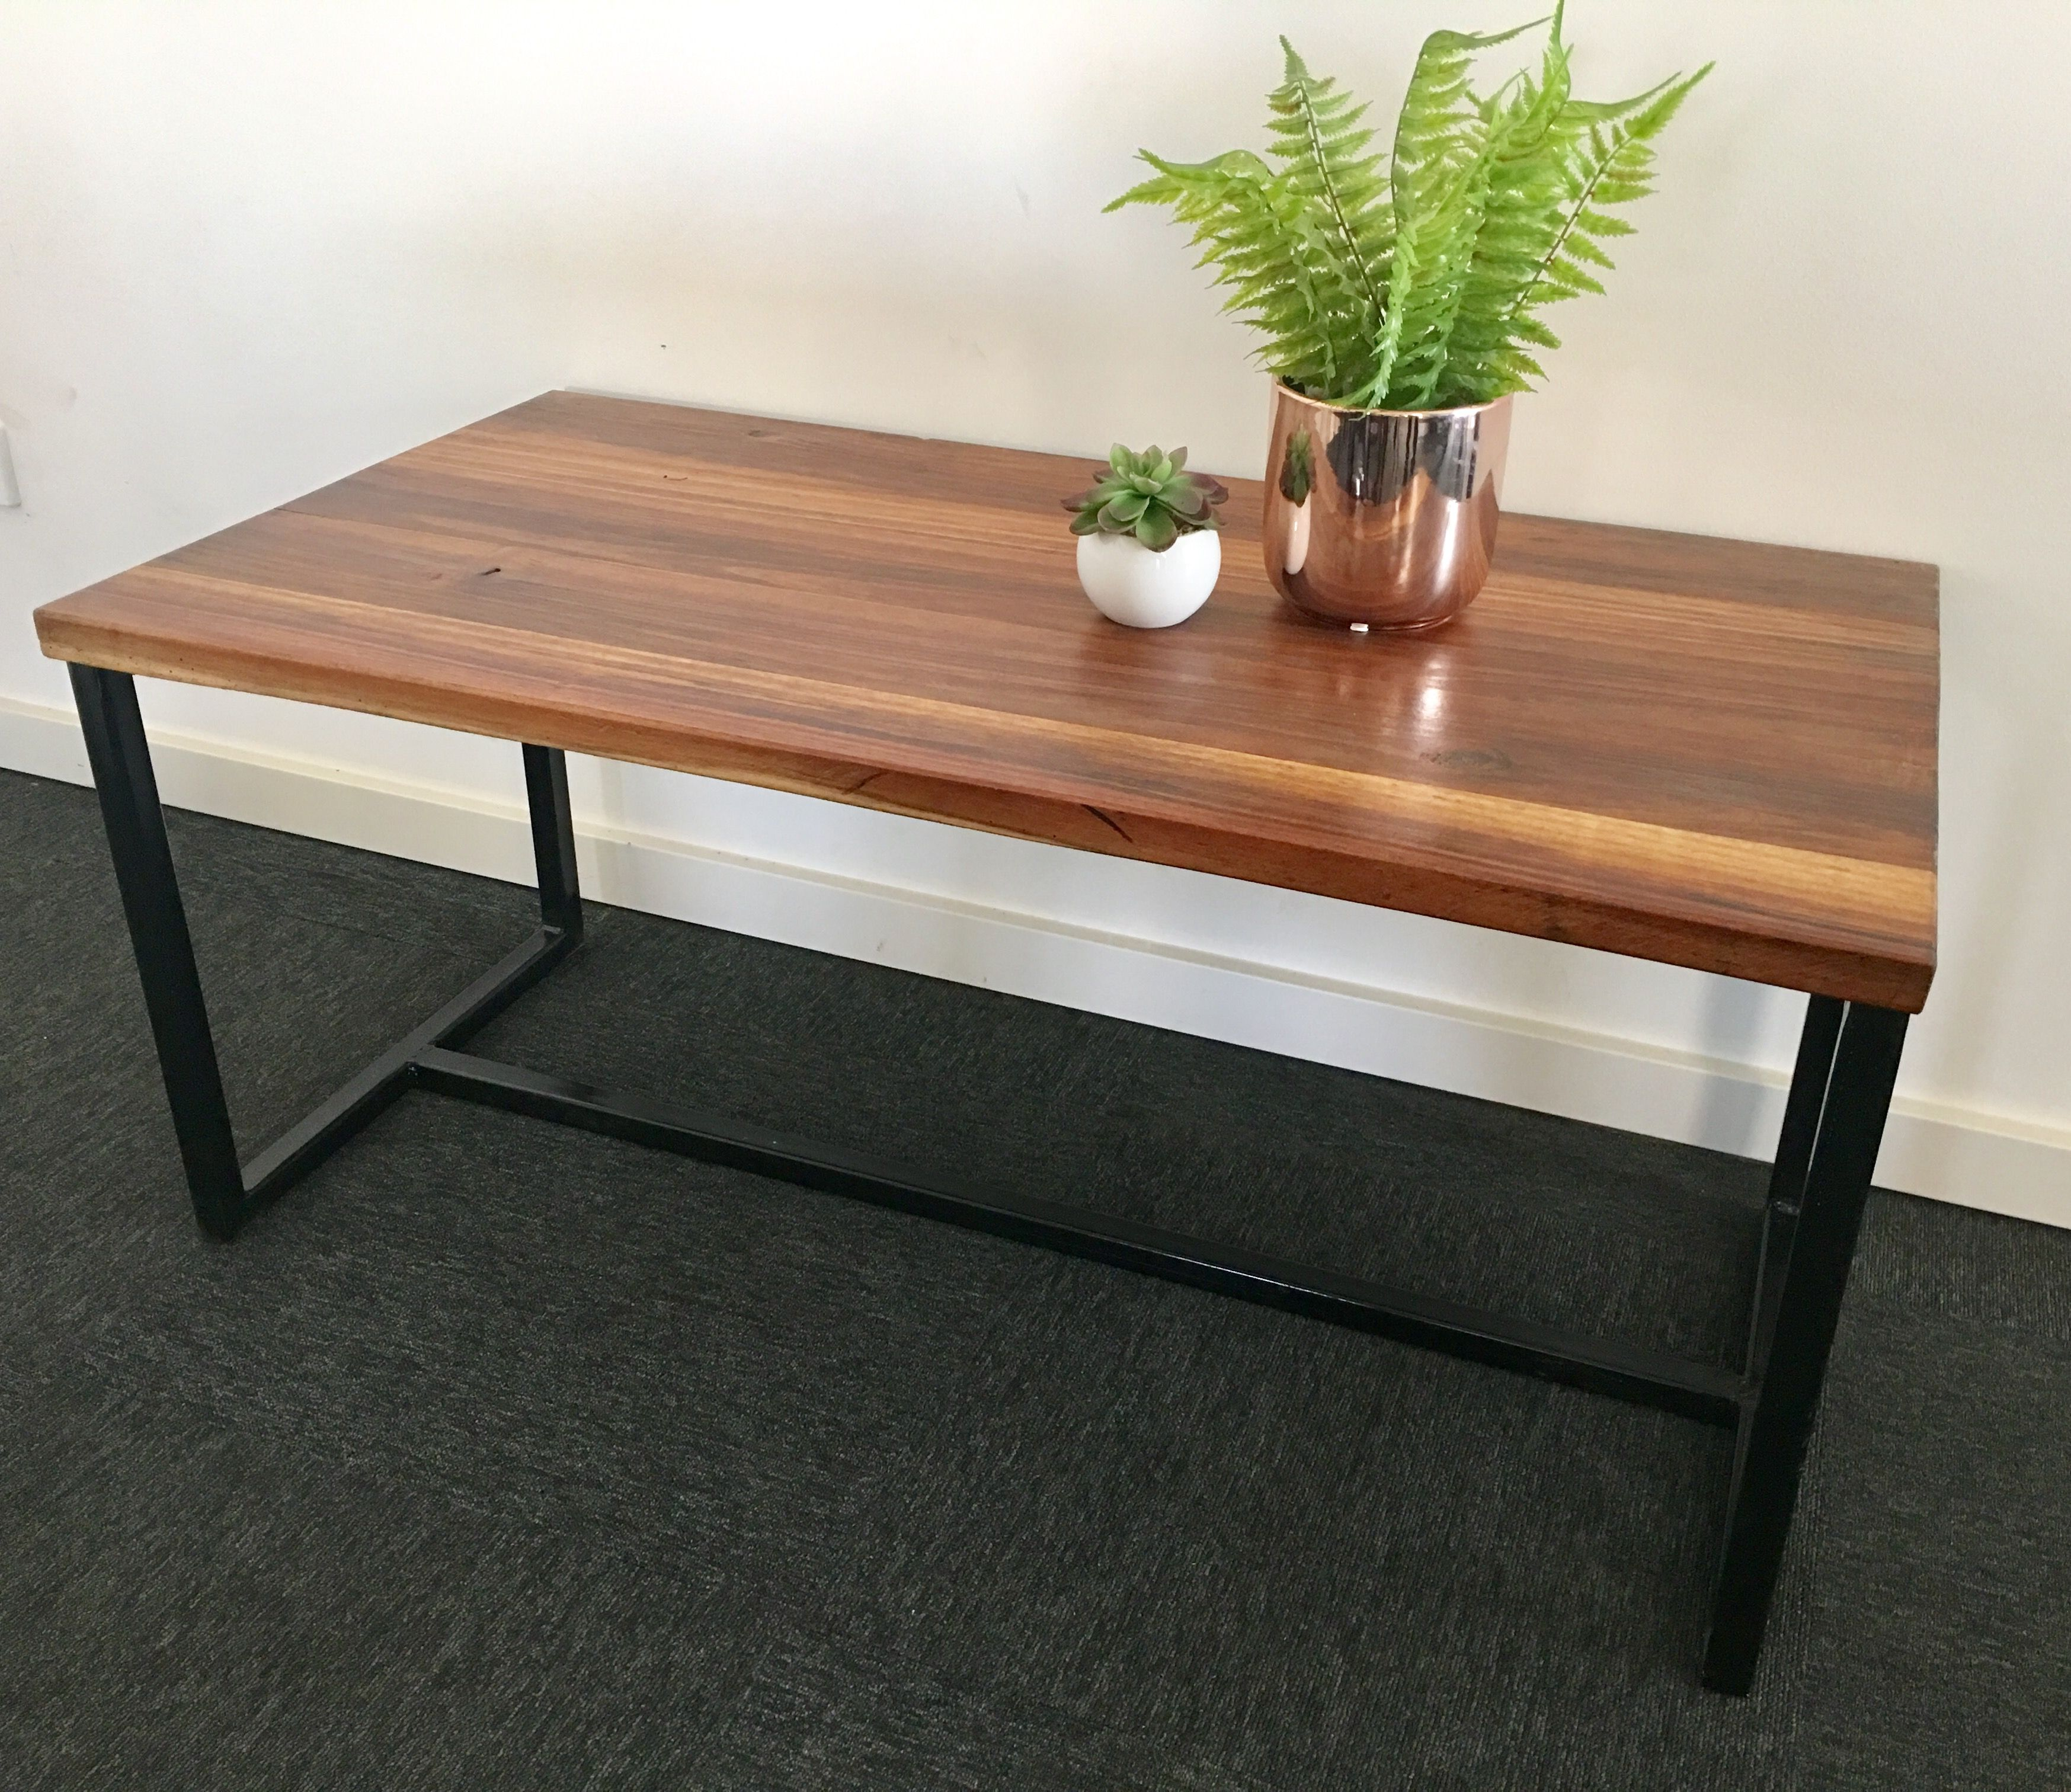 O Recycled Blackwood Industrial Coffee Table Made By  Recycledtimberfurnitureozcom